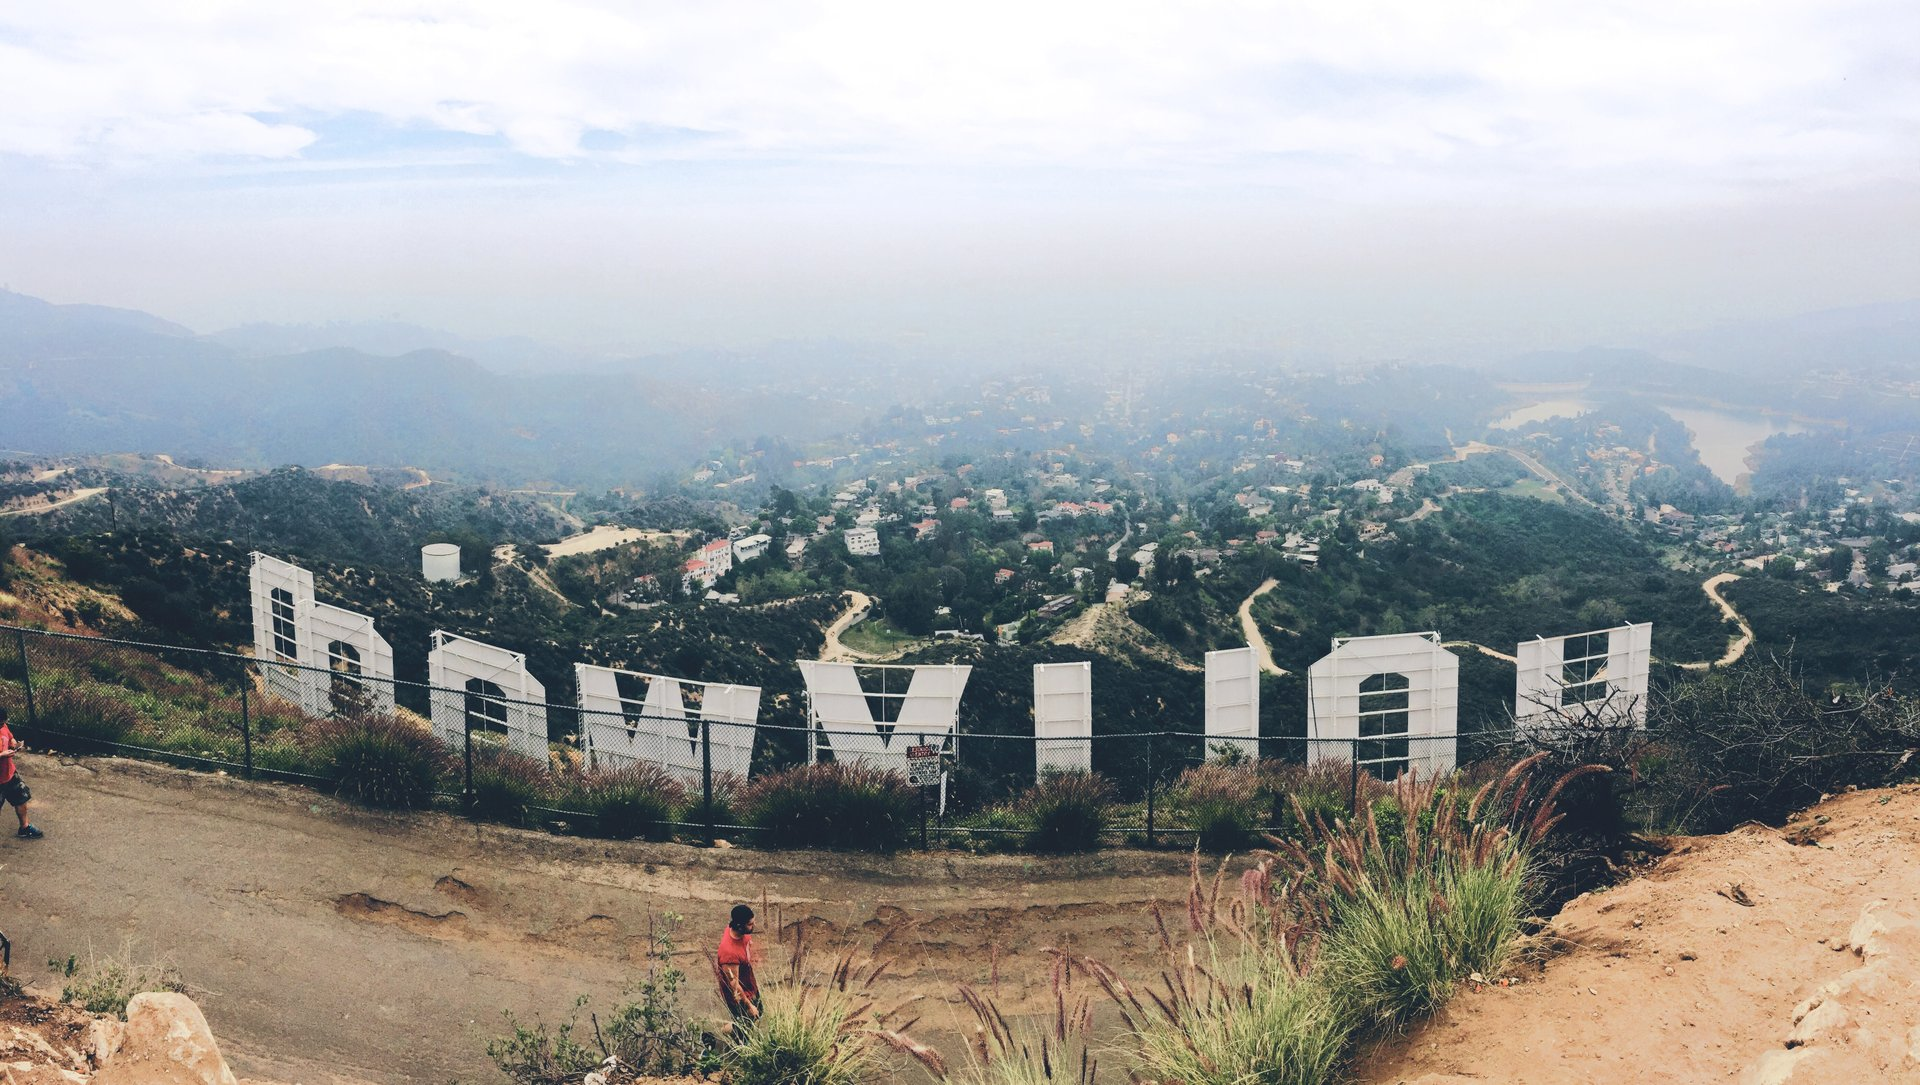 Hiking  in Los Angeles 2020 - Best Time